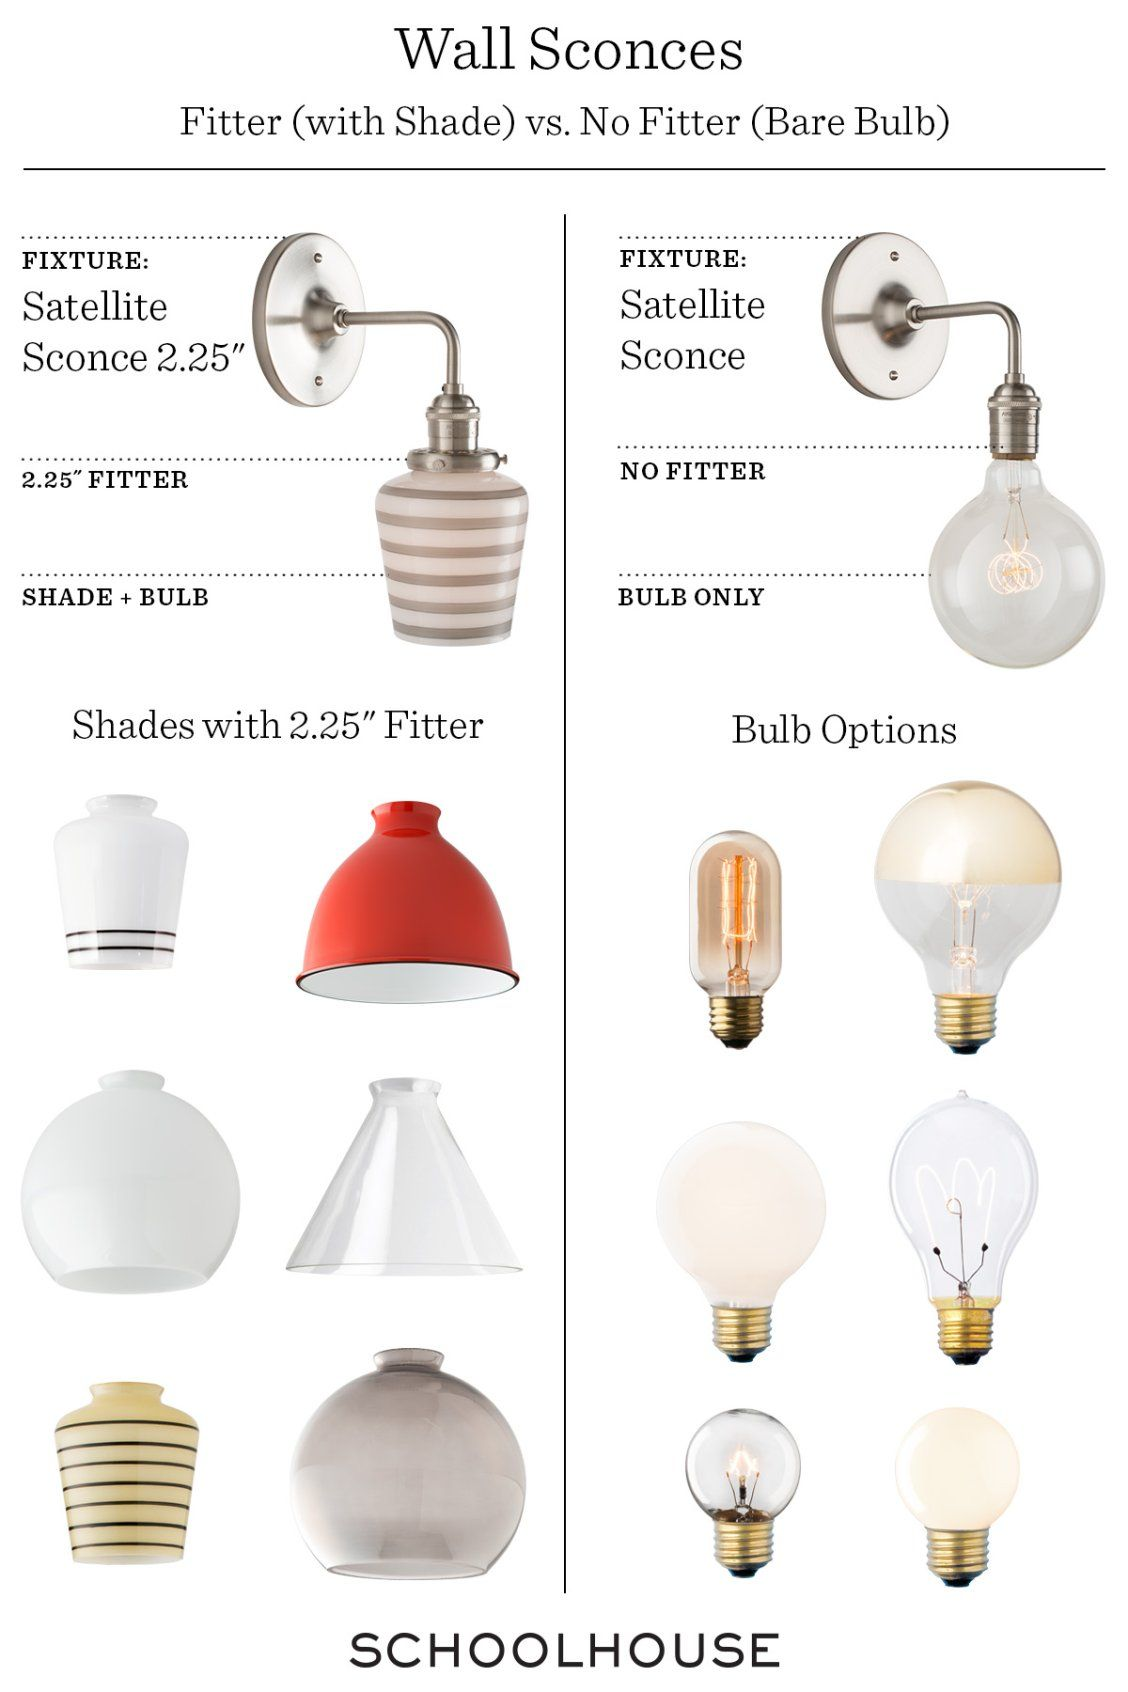 Anatomy of a Surface Mount | schoolhouse lighting | Pinterest | Wall ...